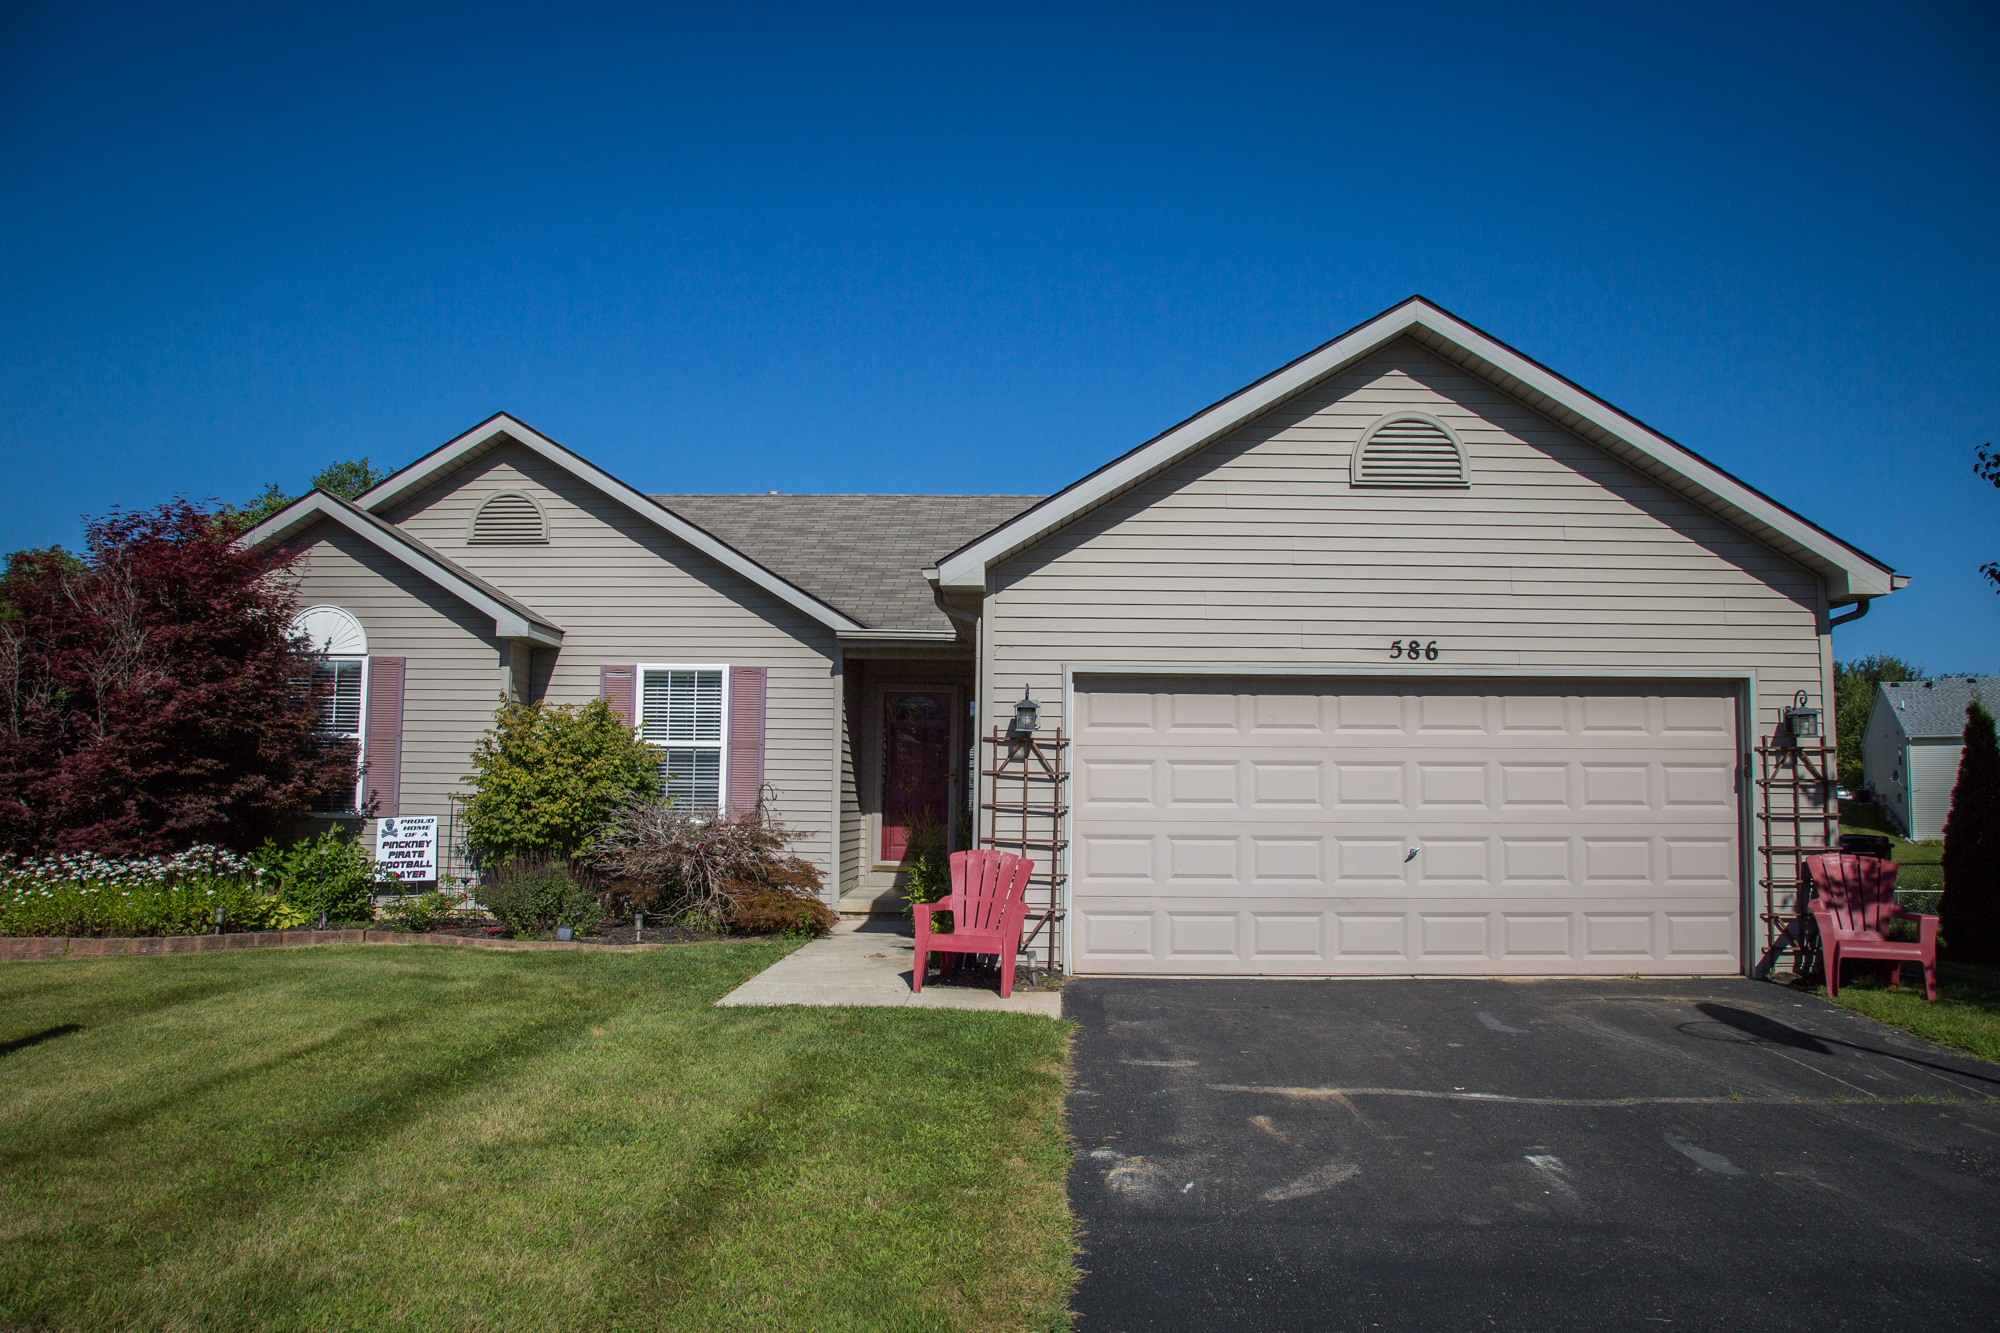 Town Trail- Pinckney - $175,000   DOM 29 / Sold for 100% of asking price / 4 Showings